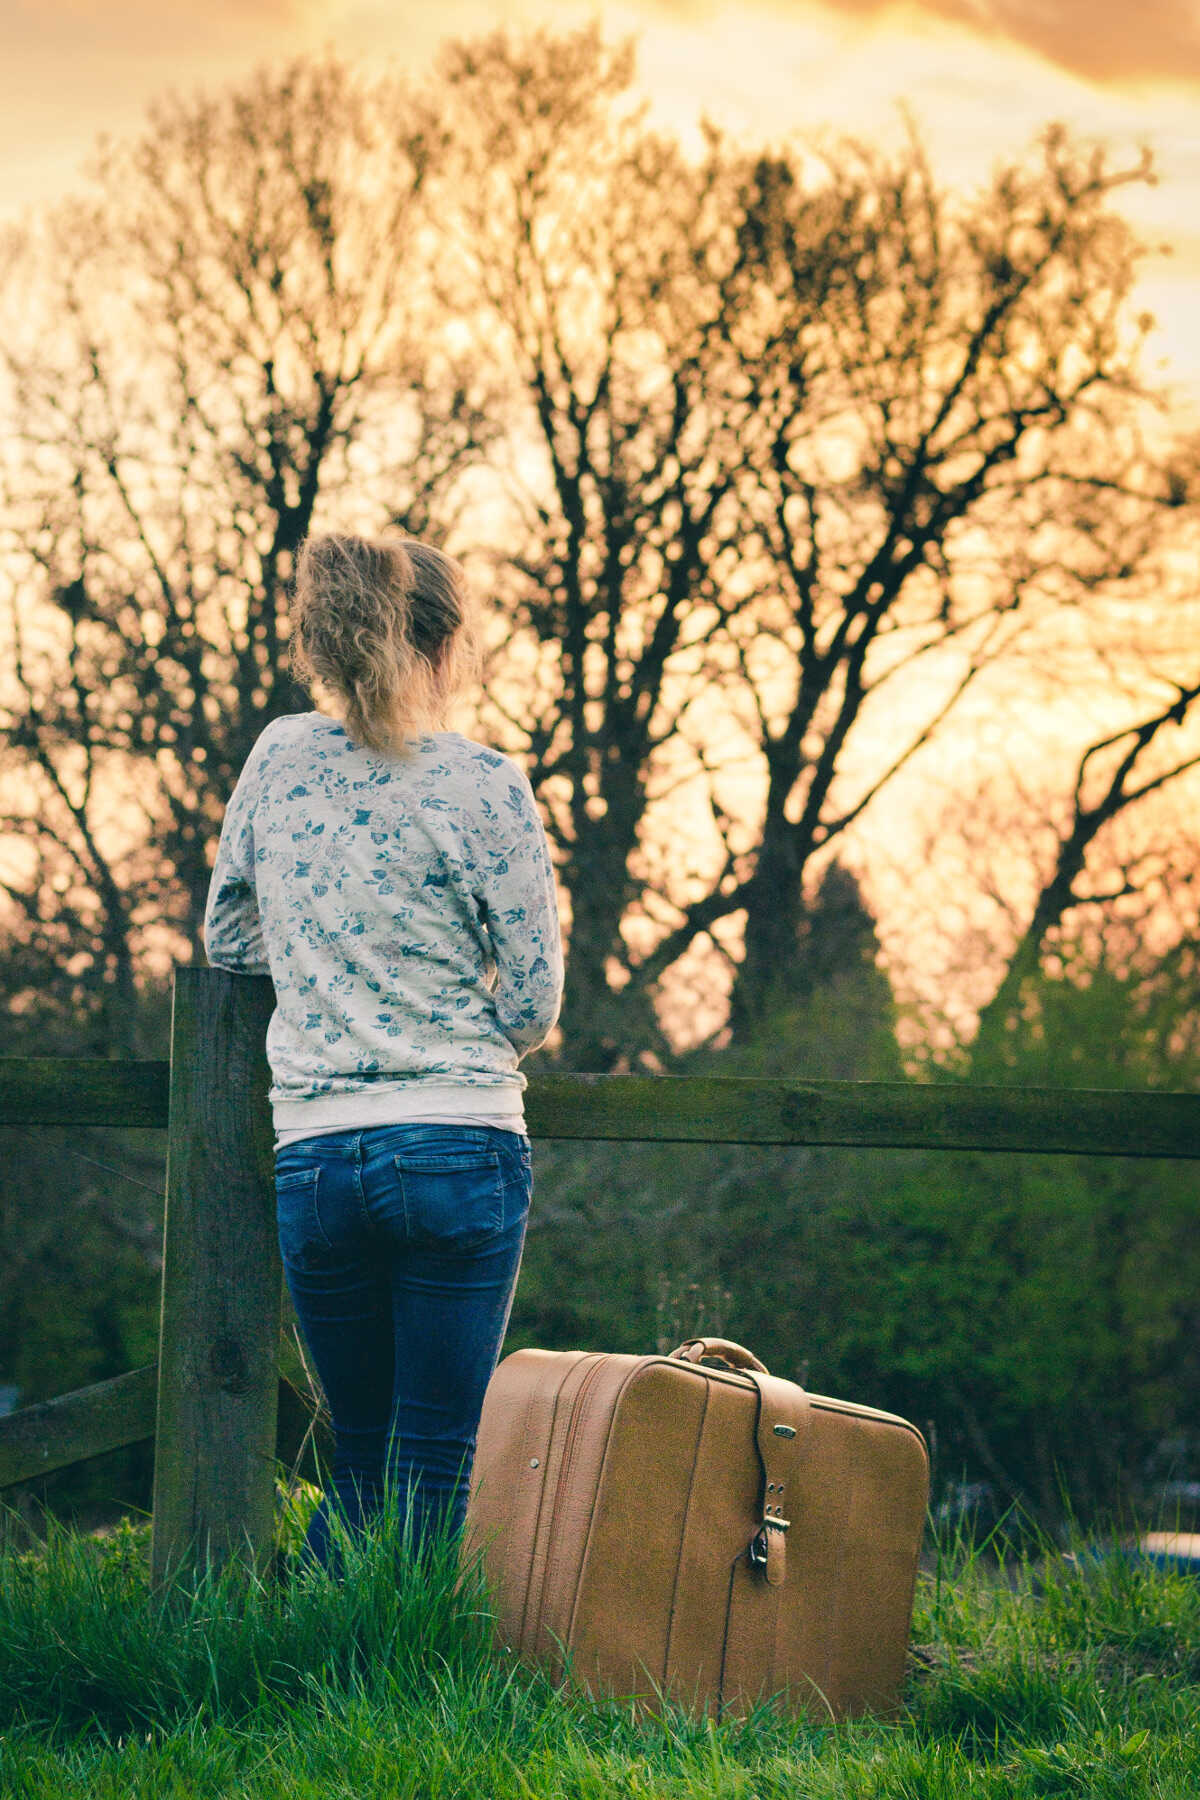 Young female standing away from the camera with a suitcase